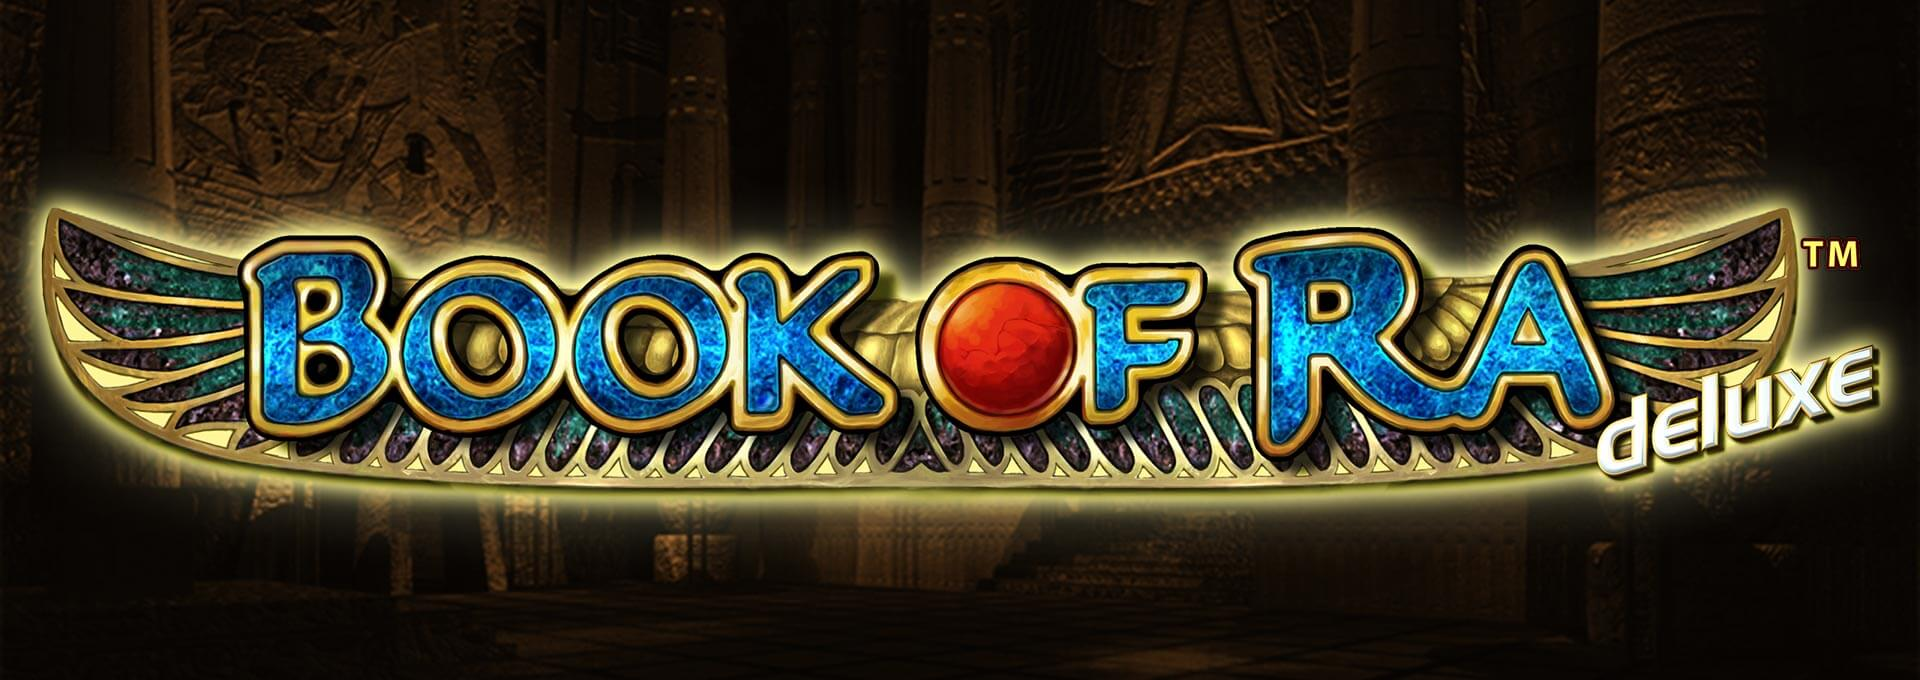 book of ra online casino  slot